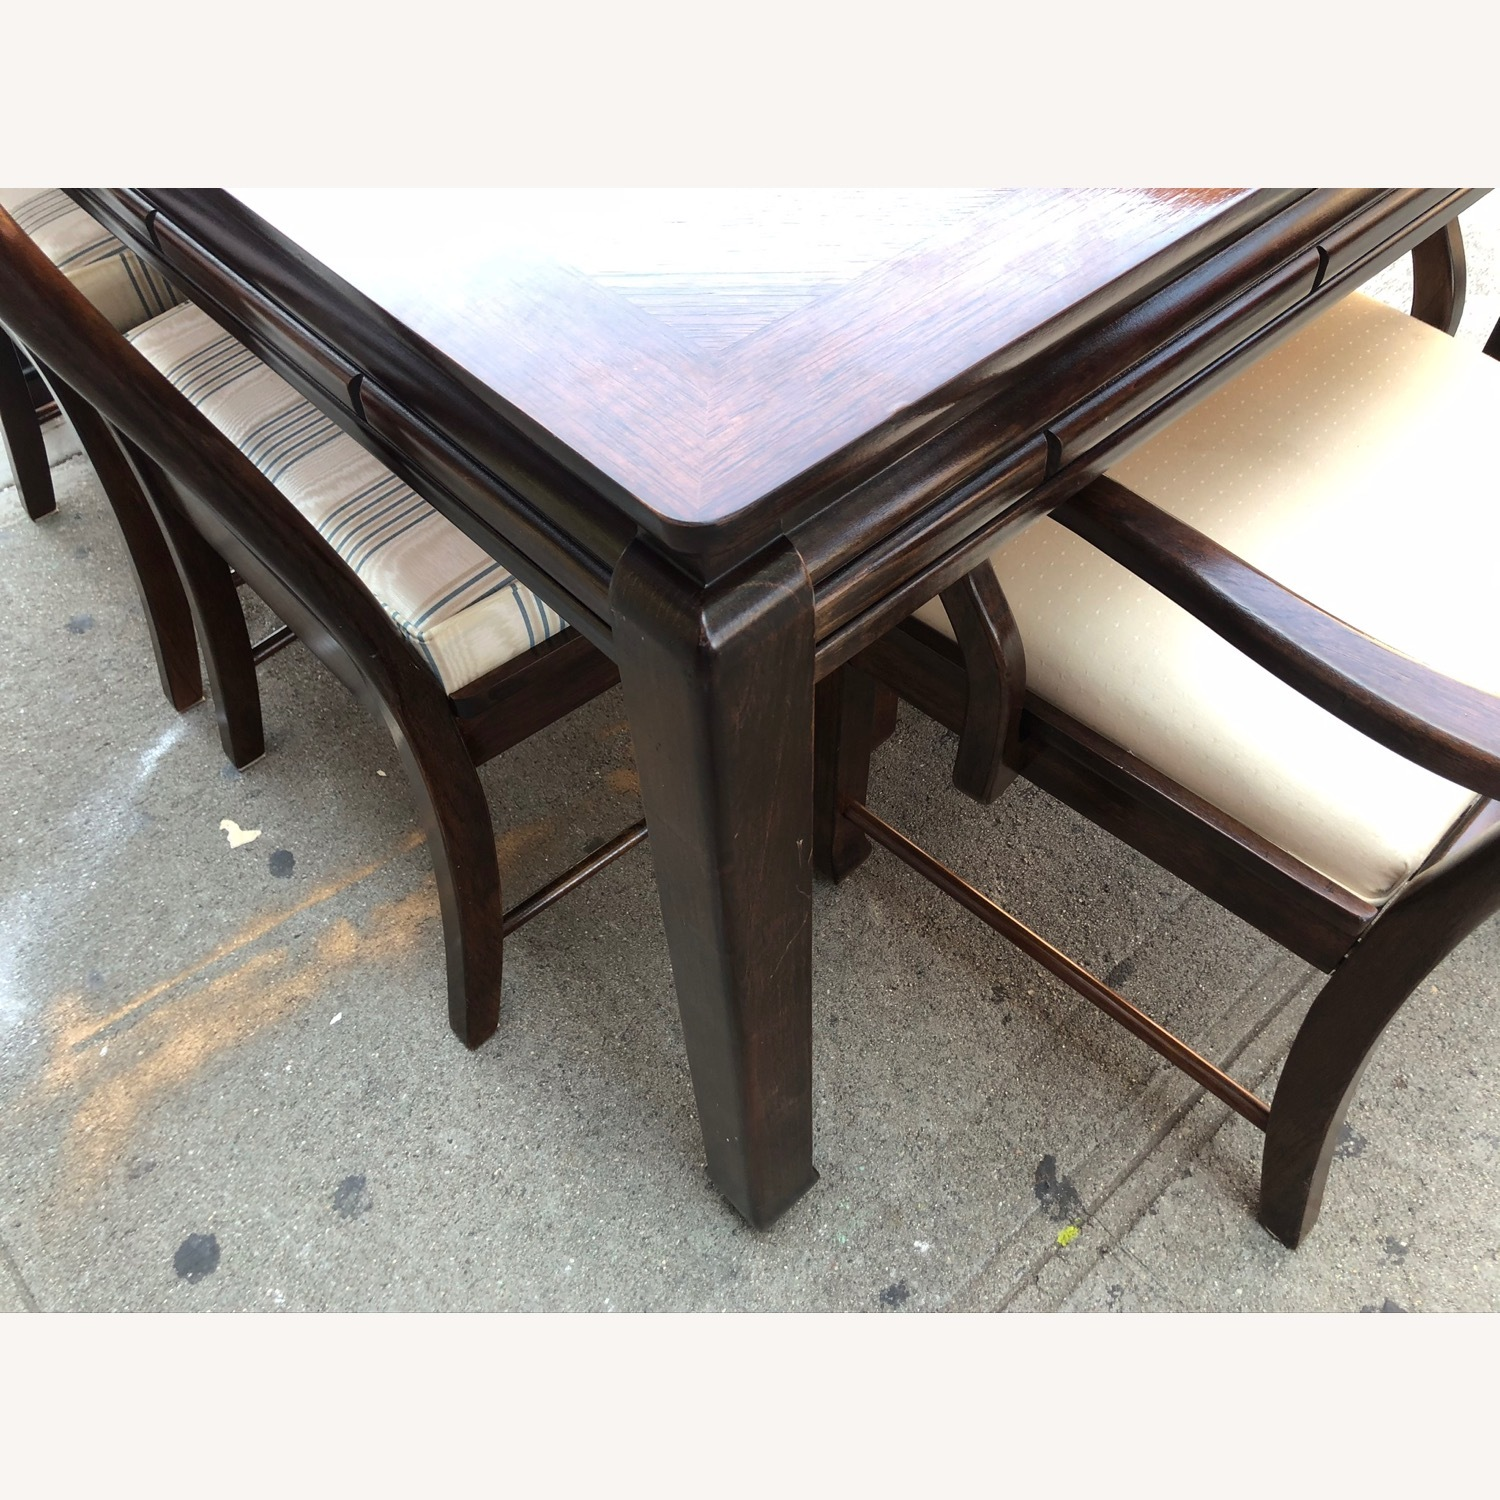 Vintage 1970s Table w/6 Chairs & 2 Extension - image-7